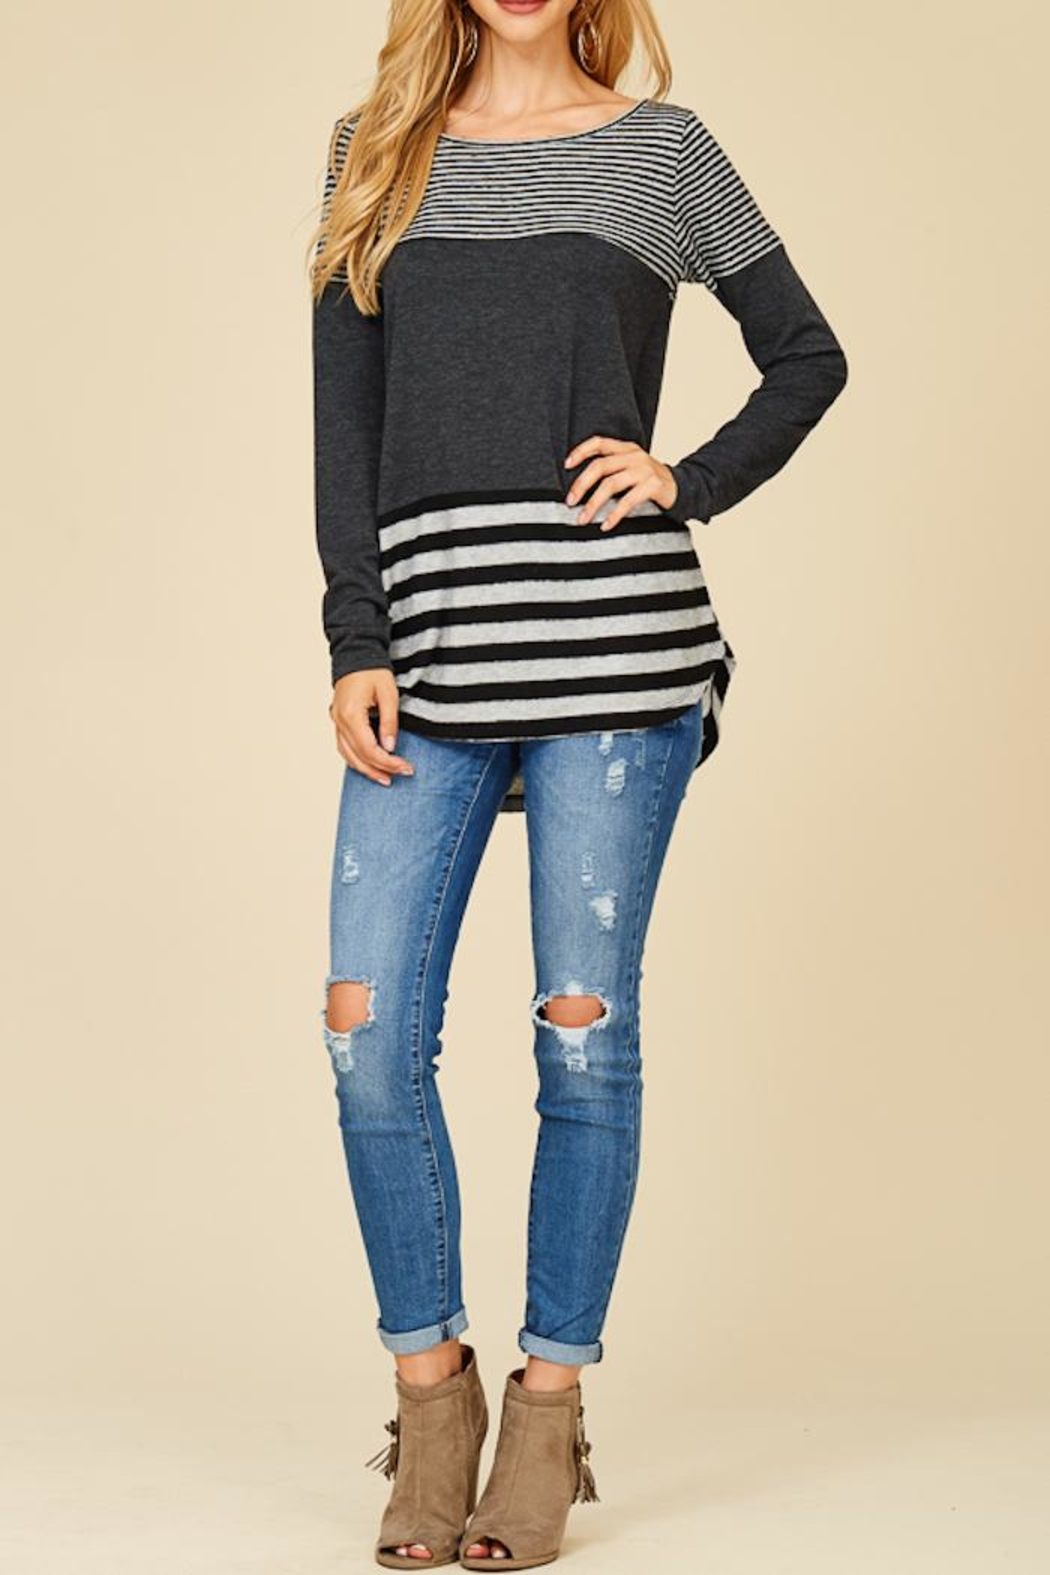 Staccato Solid And Stripe Top - Main Image